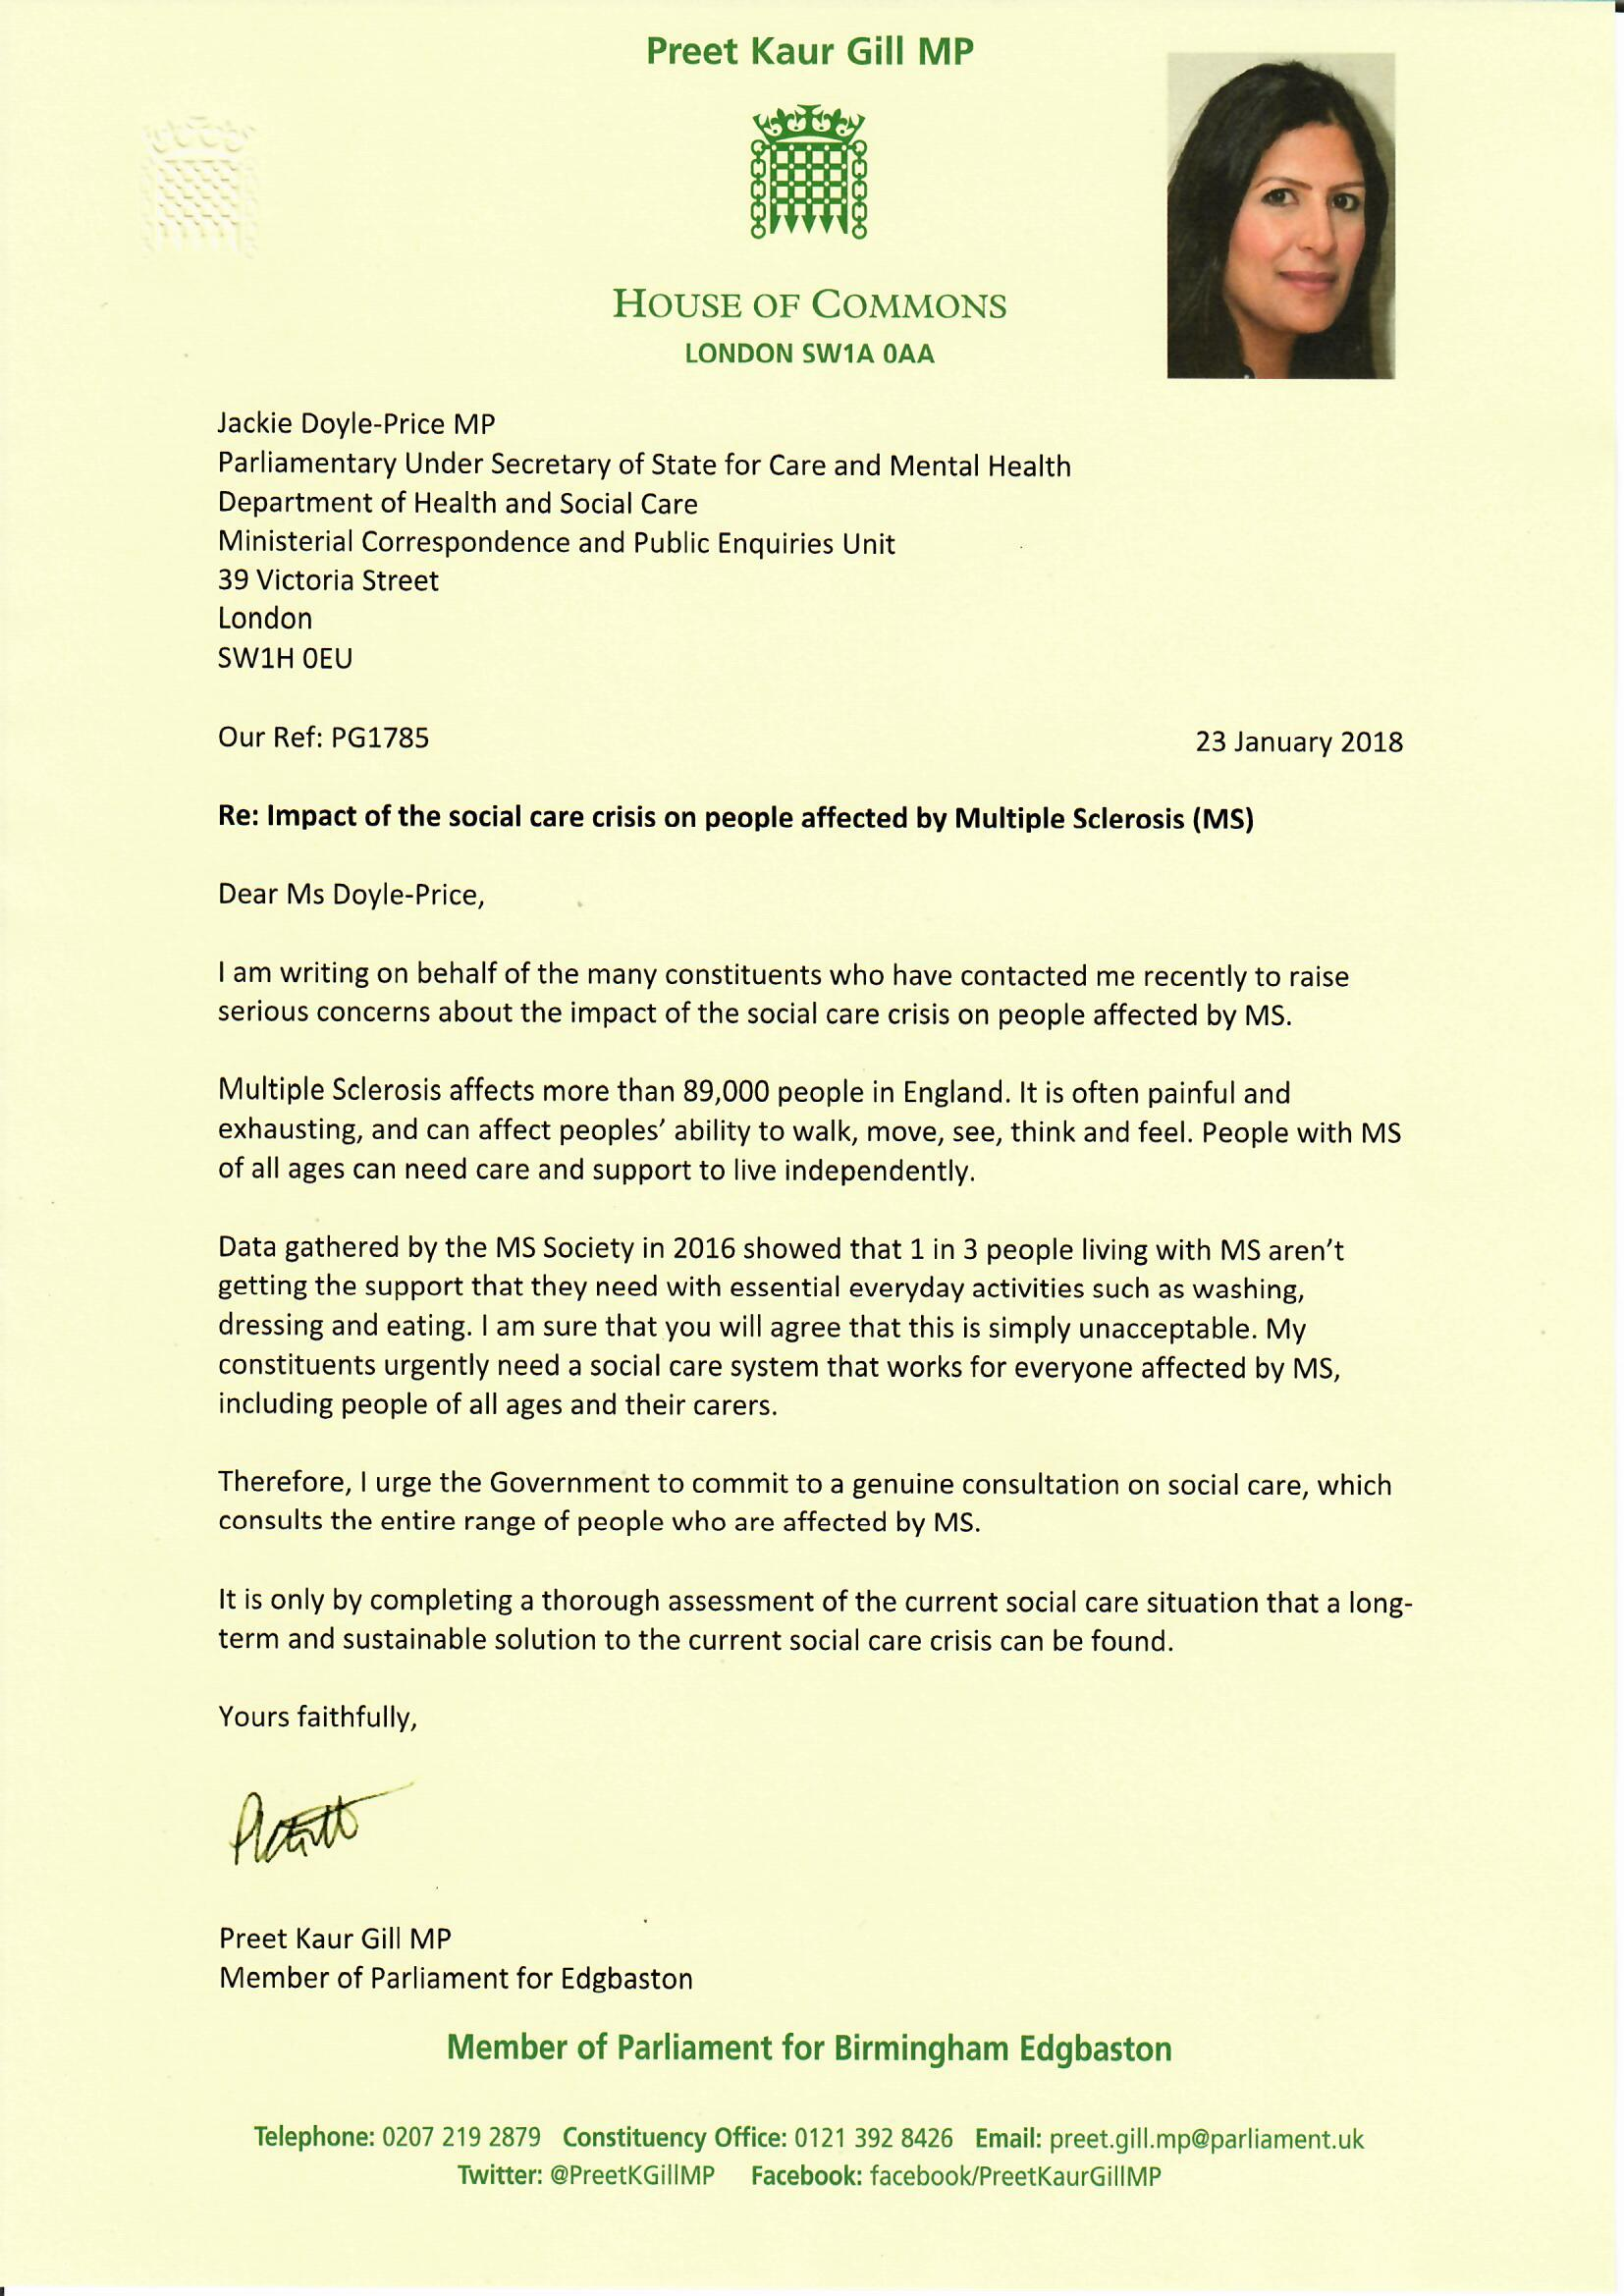 Letter to Jackie Doyle-Price MP re: impact of social care crisis on people with MS